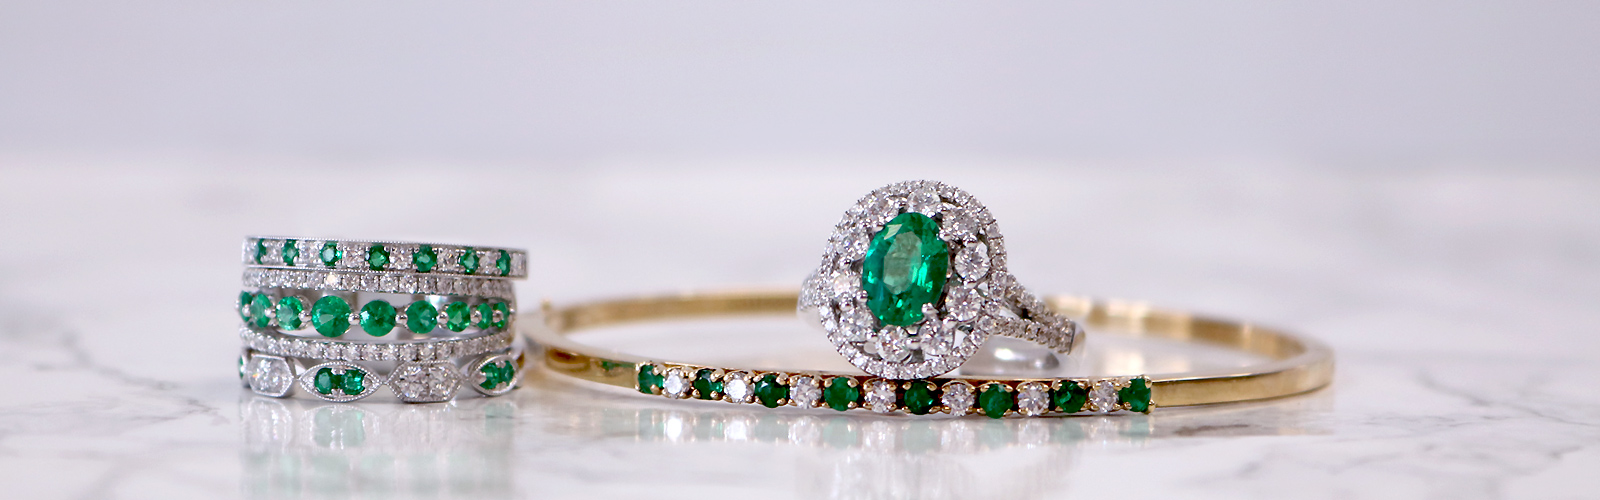 Emeralds - St. Patrick's Day - Bentley Diamond